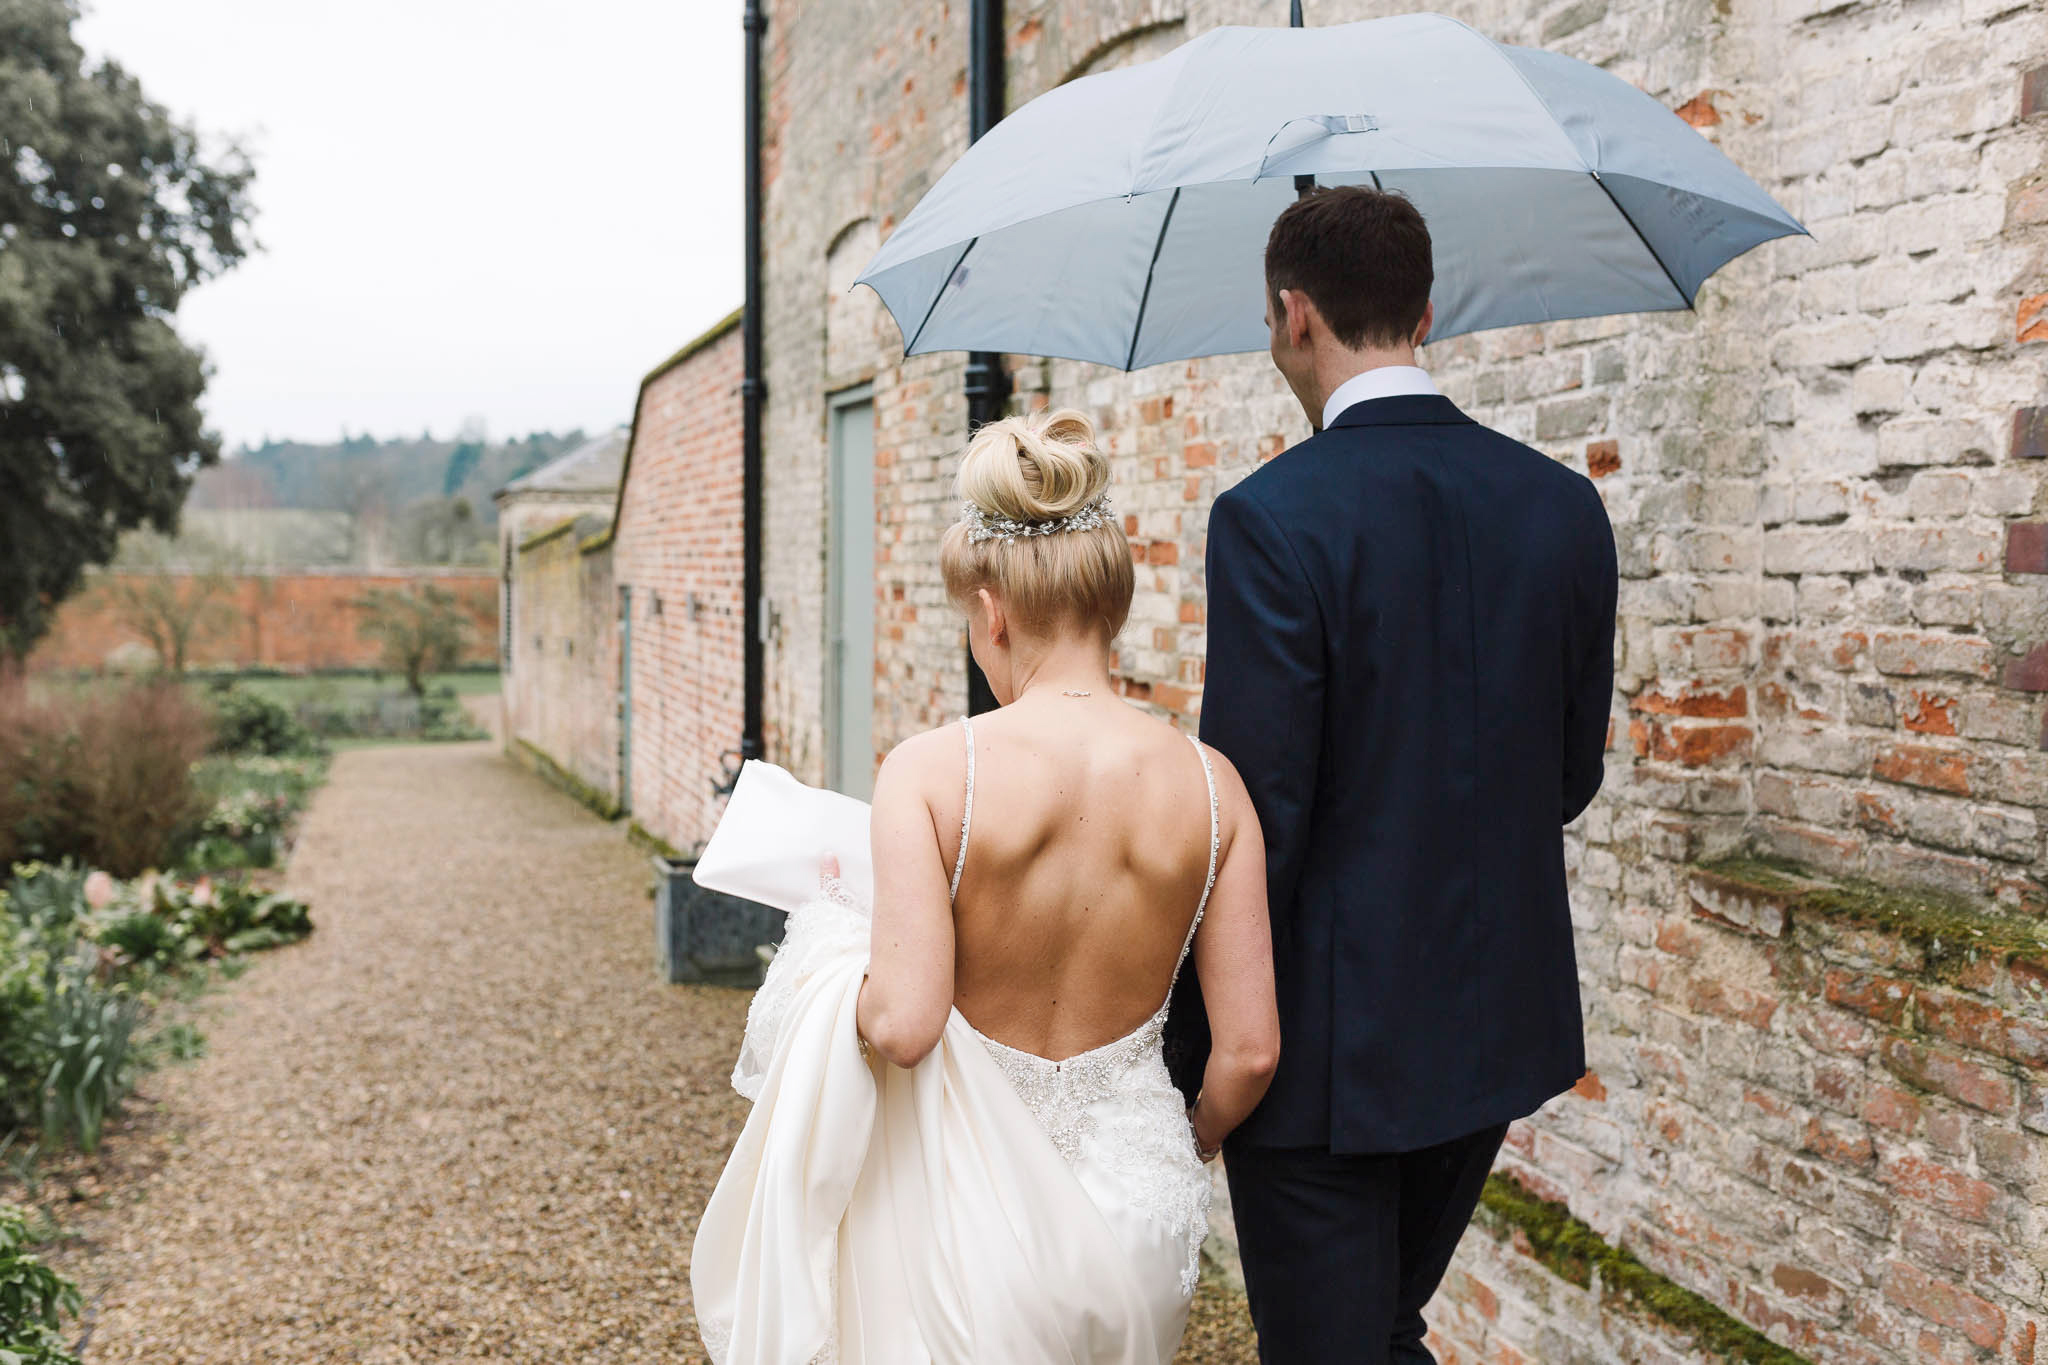 wedding photo with umbrella